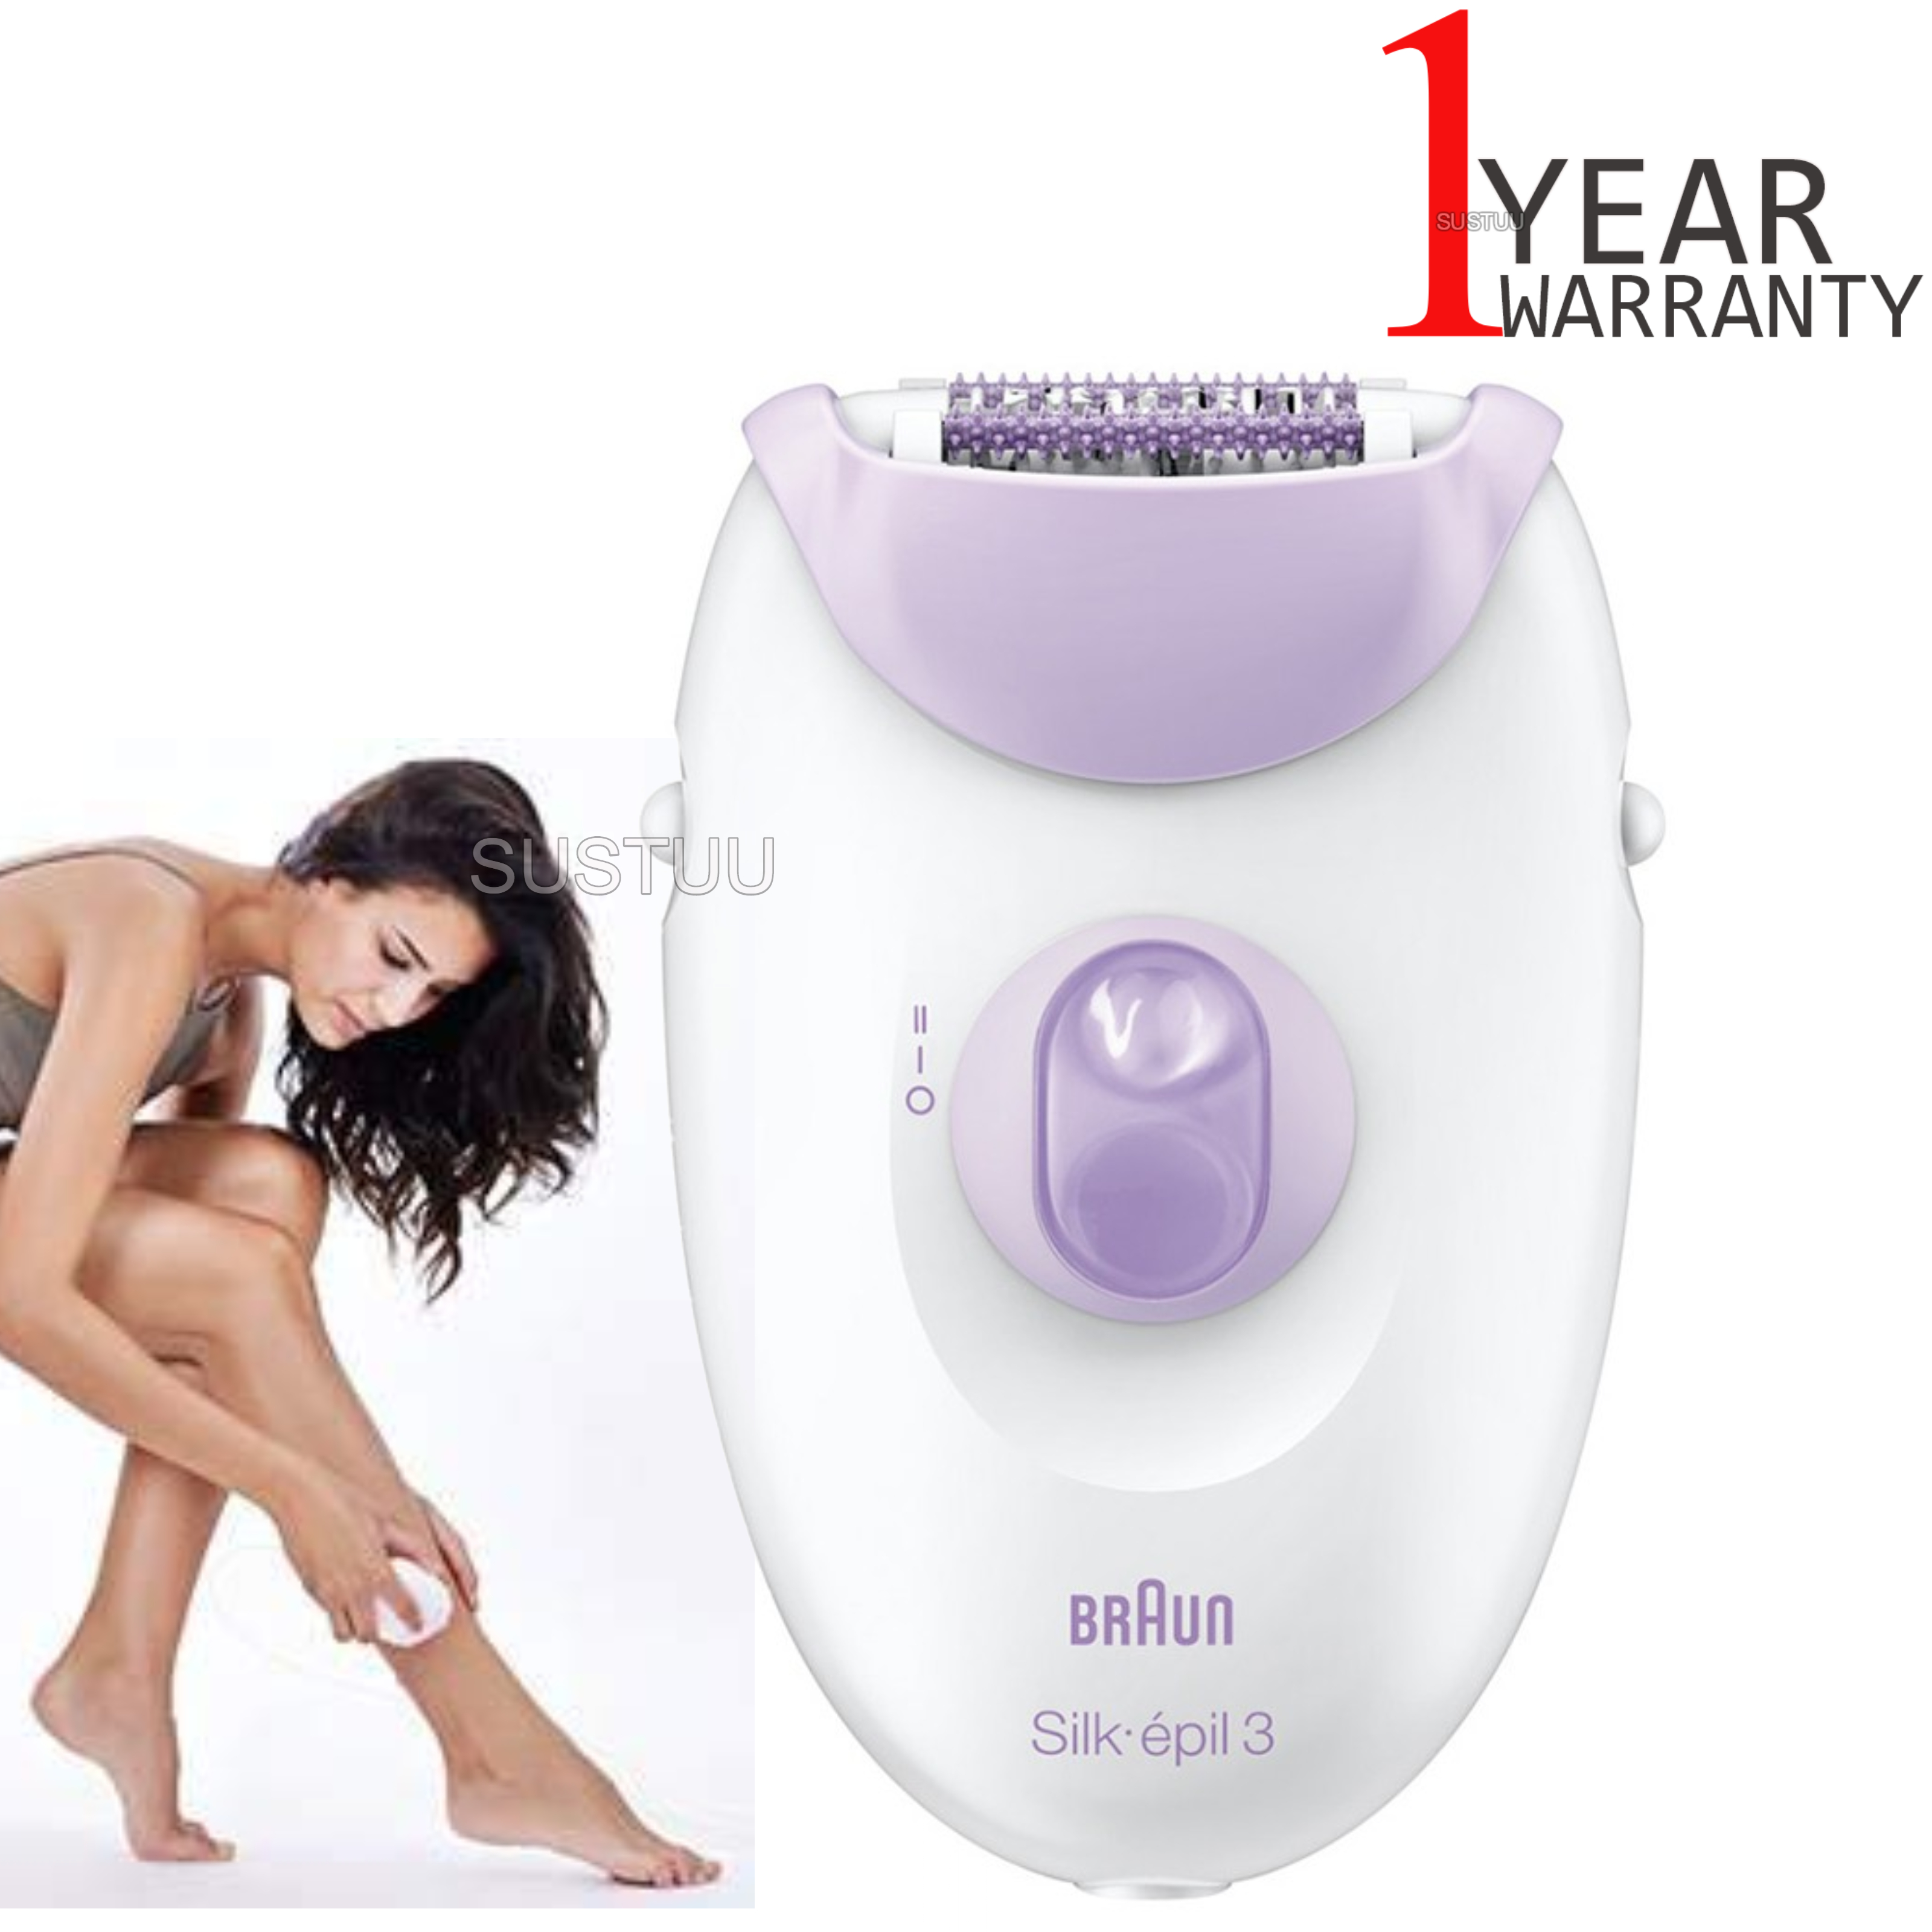 Braun Silk-épil 3 3170 Leg Epilator|Women|Gentle 20 Tweezer Hair Removal Device|